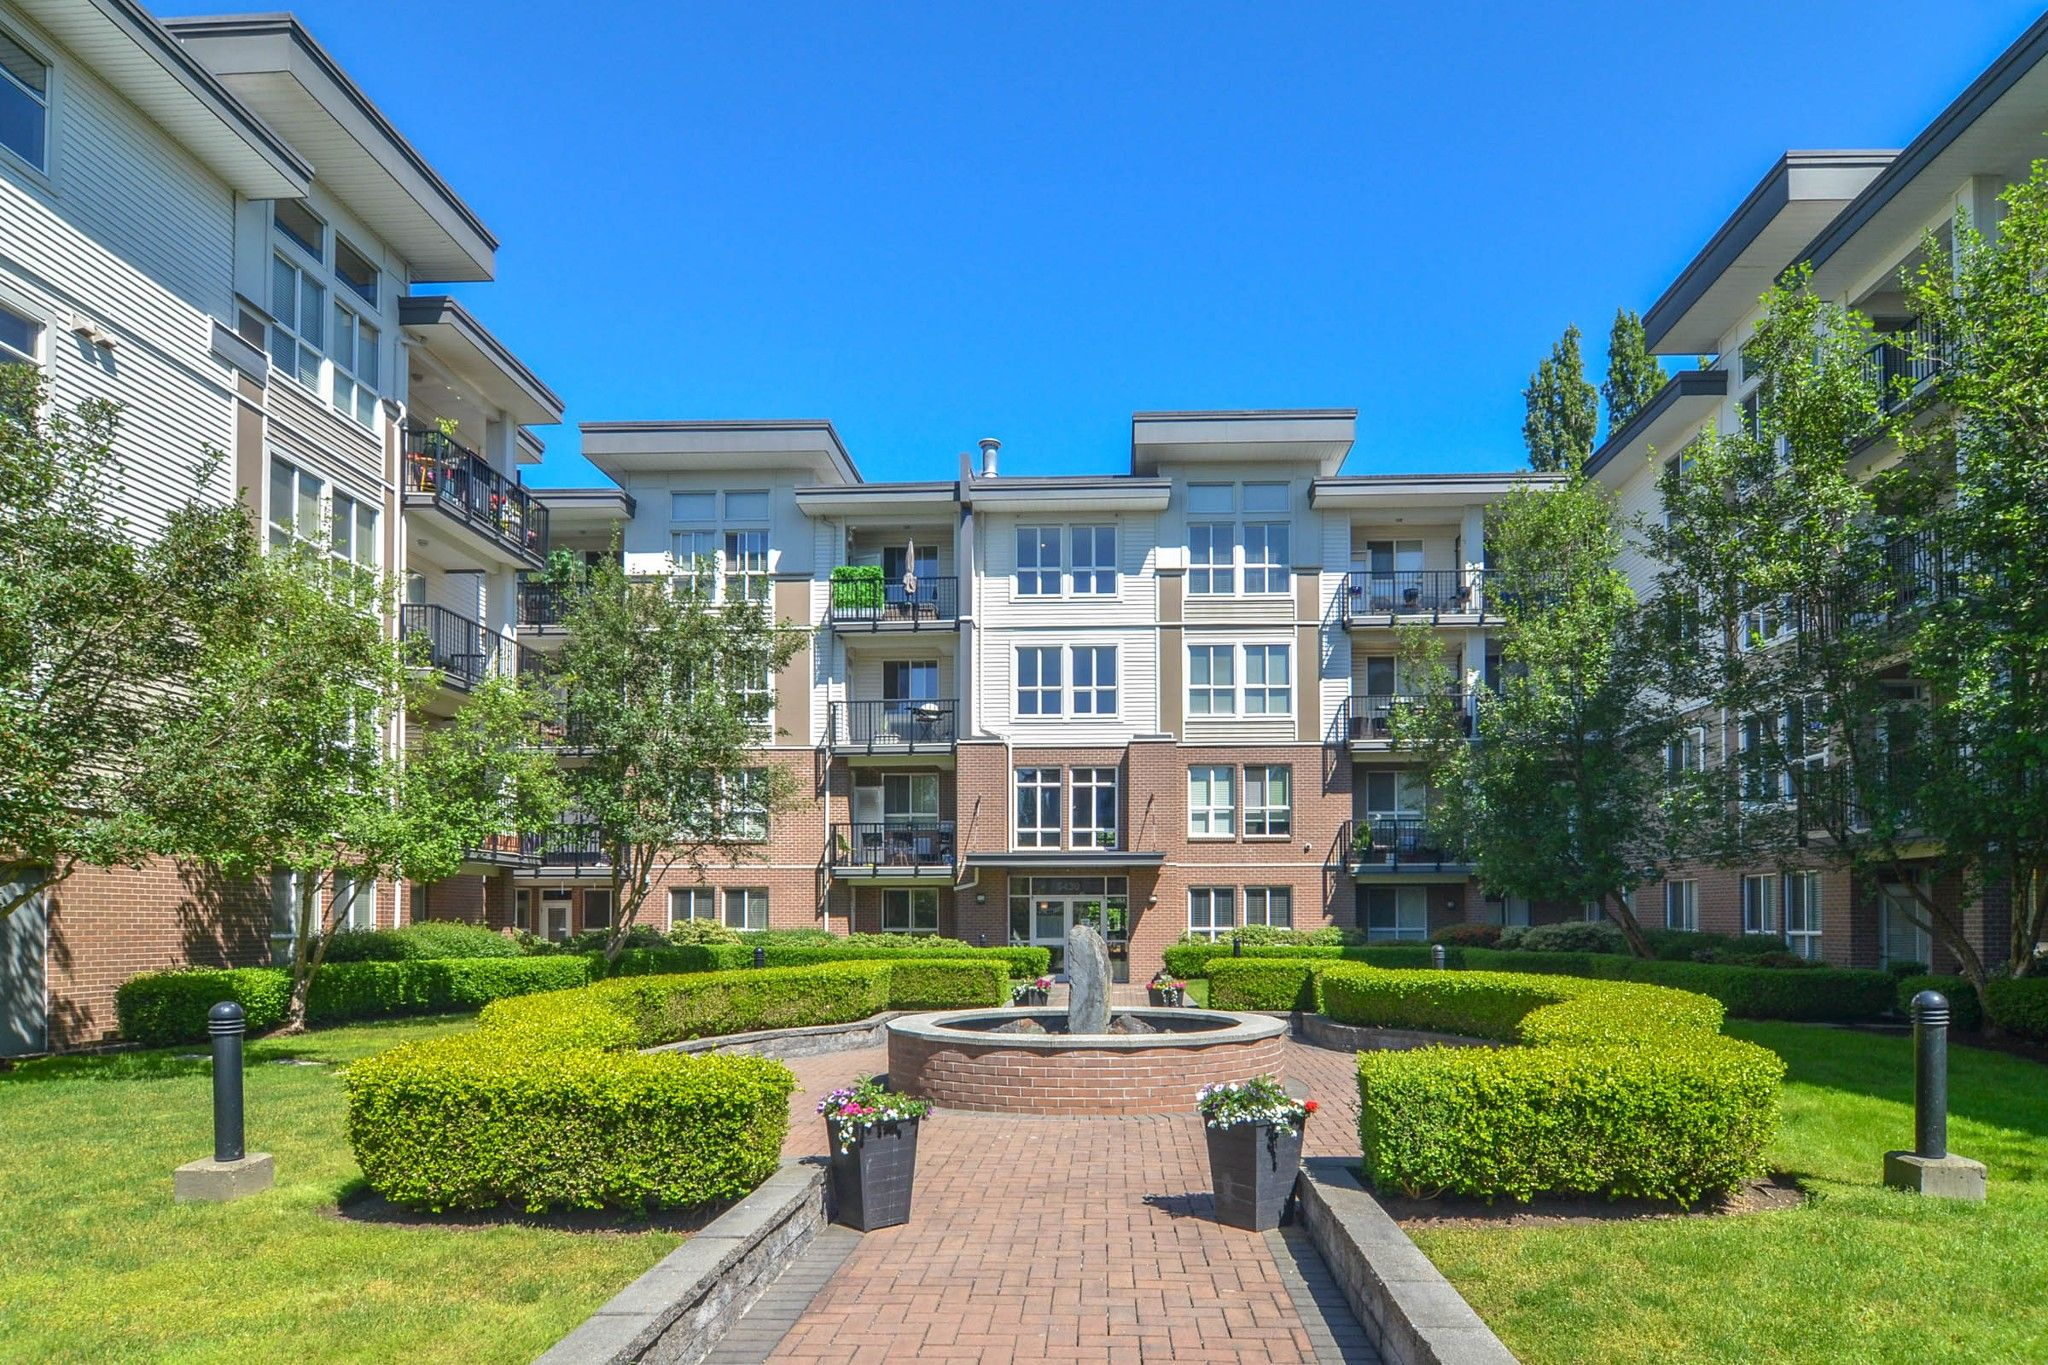 """Main Photo: 418 5430 201 Street in Langley: Langley City Condo for sale in """"The Sonnet"""" : MLS®# R2588283"""